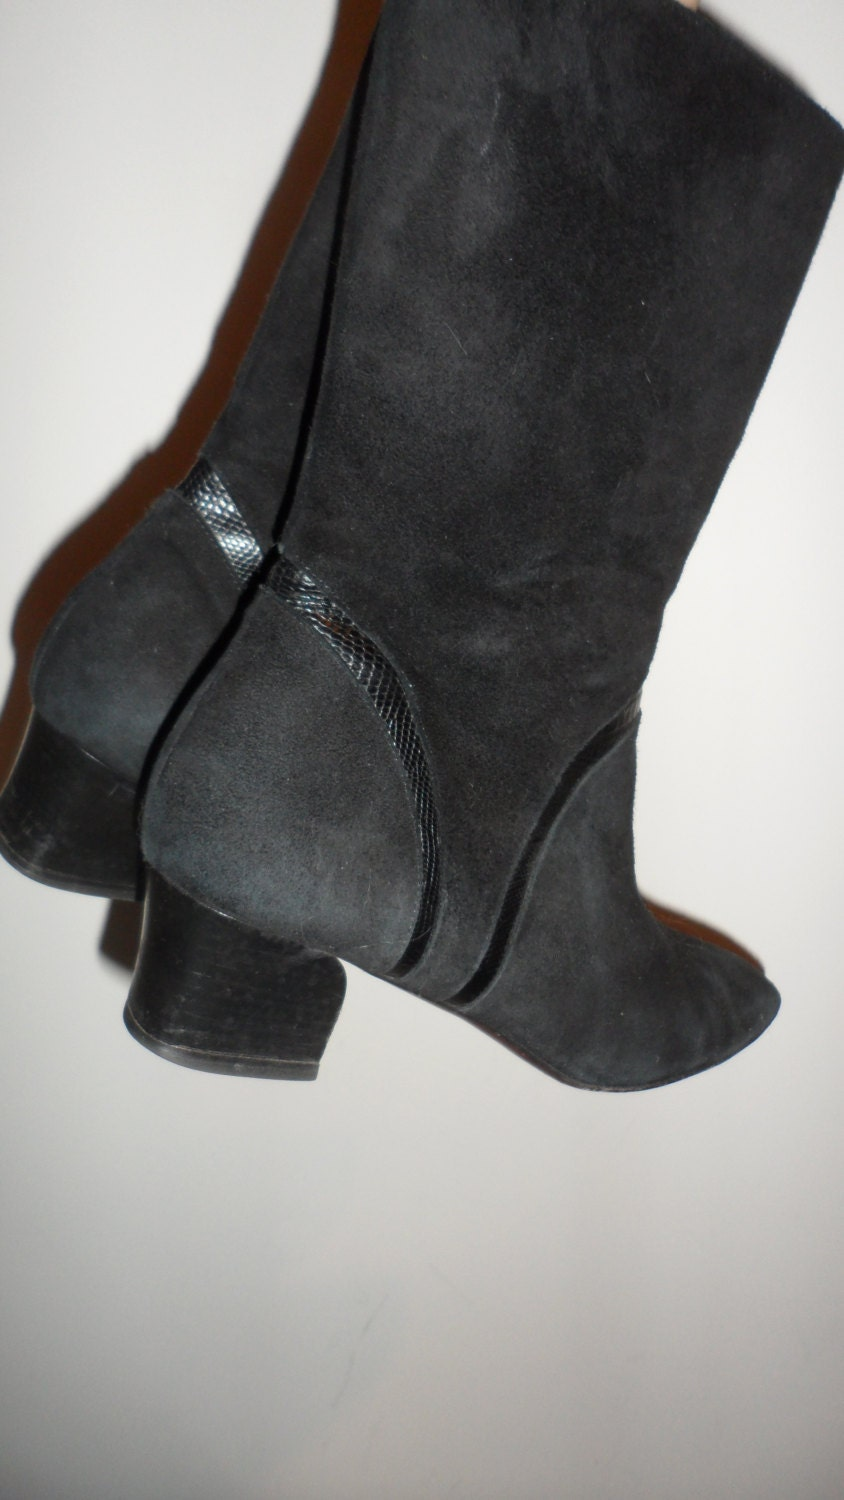 cole haan black suede boots sutle leather detail design